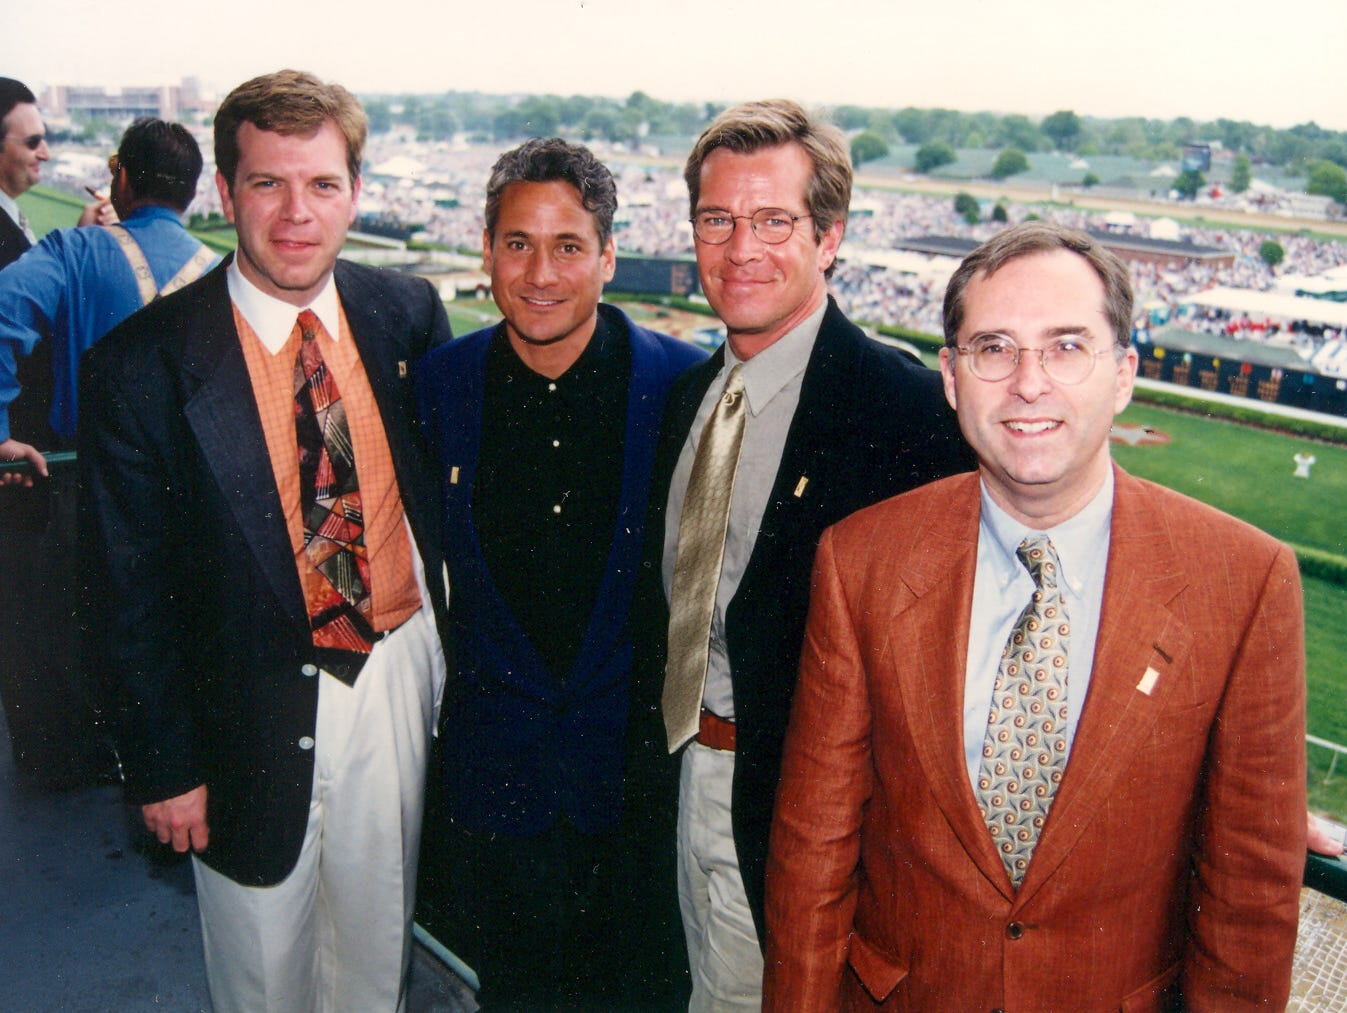 Mike Berry, left, at Churchill Downs with Derby Festival guests.